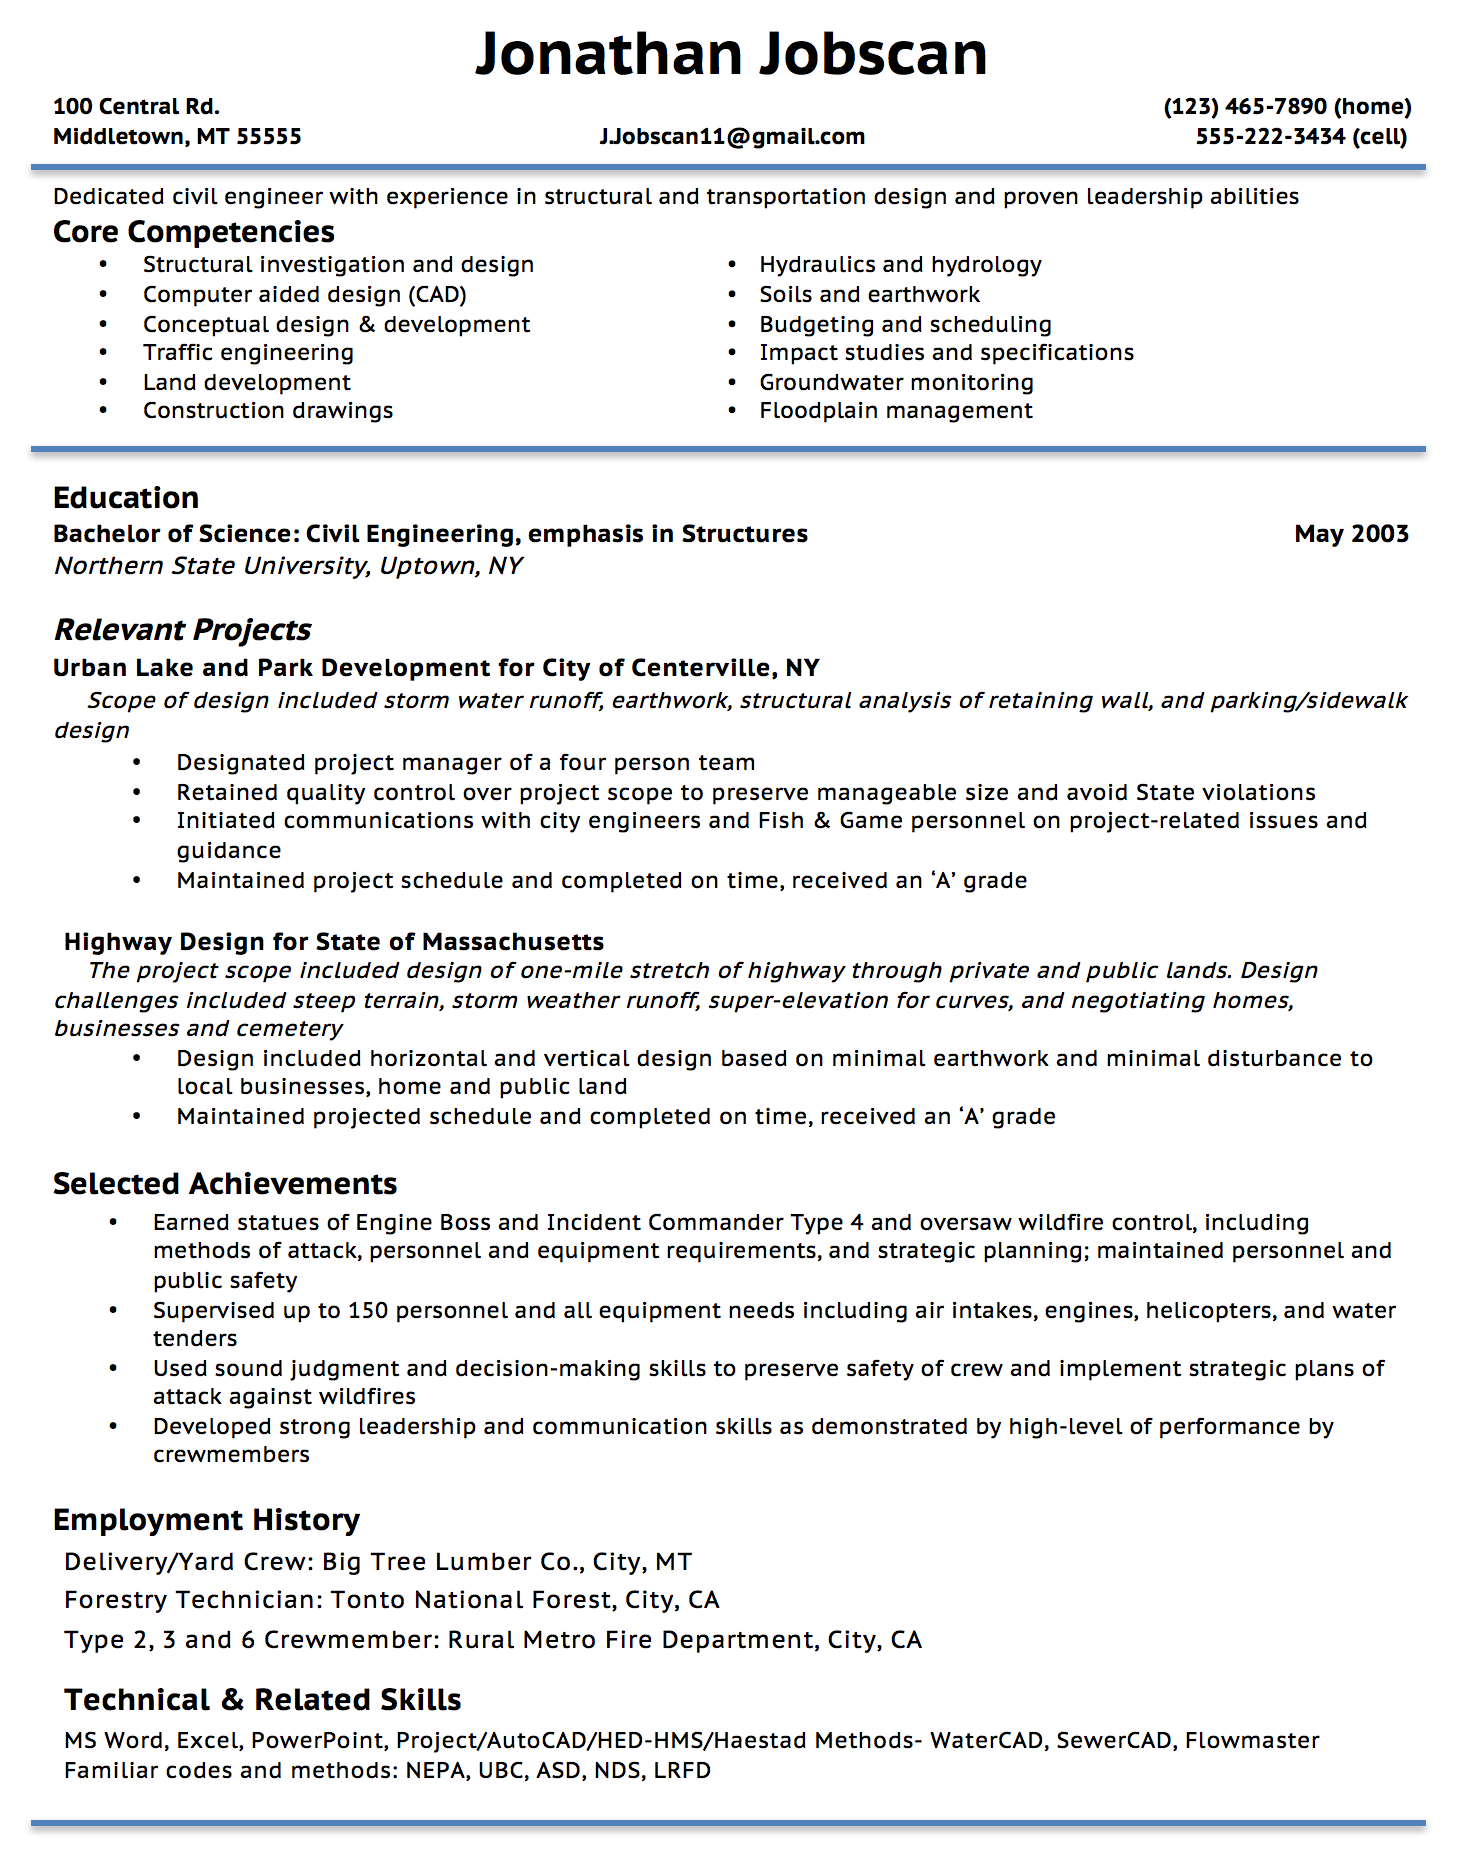 Opposenewapstandardsus  Marvellous Resume Writing Guide  Jobscan With Extraordinary Example Of A Functional Resume Format With Nice Create Resume Free Also Free Resume Downloads In Addition Warehouse Worker Resume And General Resume As Well As Keywords For Resumes Additionally Customer Service Resume Skills From Jobscanco With Opposenewapstandardsus  Extraordinary Resume Writing Guide  Jobscan With Nice Example Of A Functional Resume Format And Marvellous Create Resume Free Also Free Resume Downloads In Addition Warehouse Worker Resume From Jobscanco